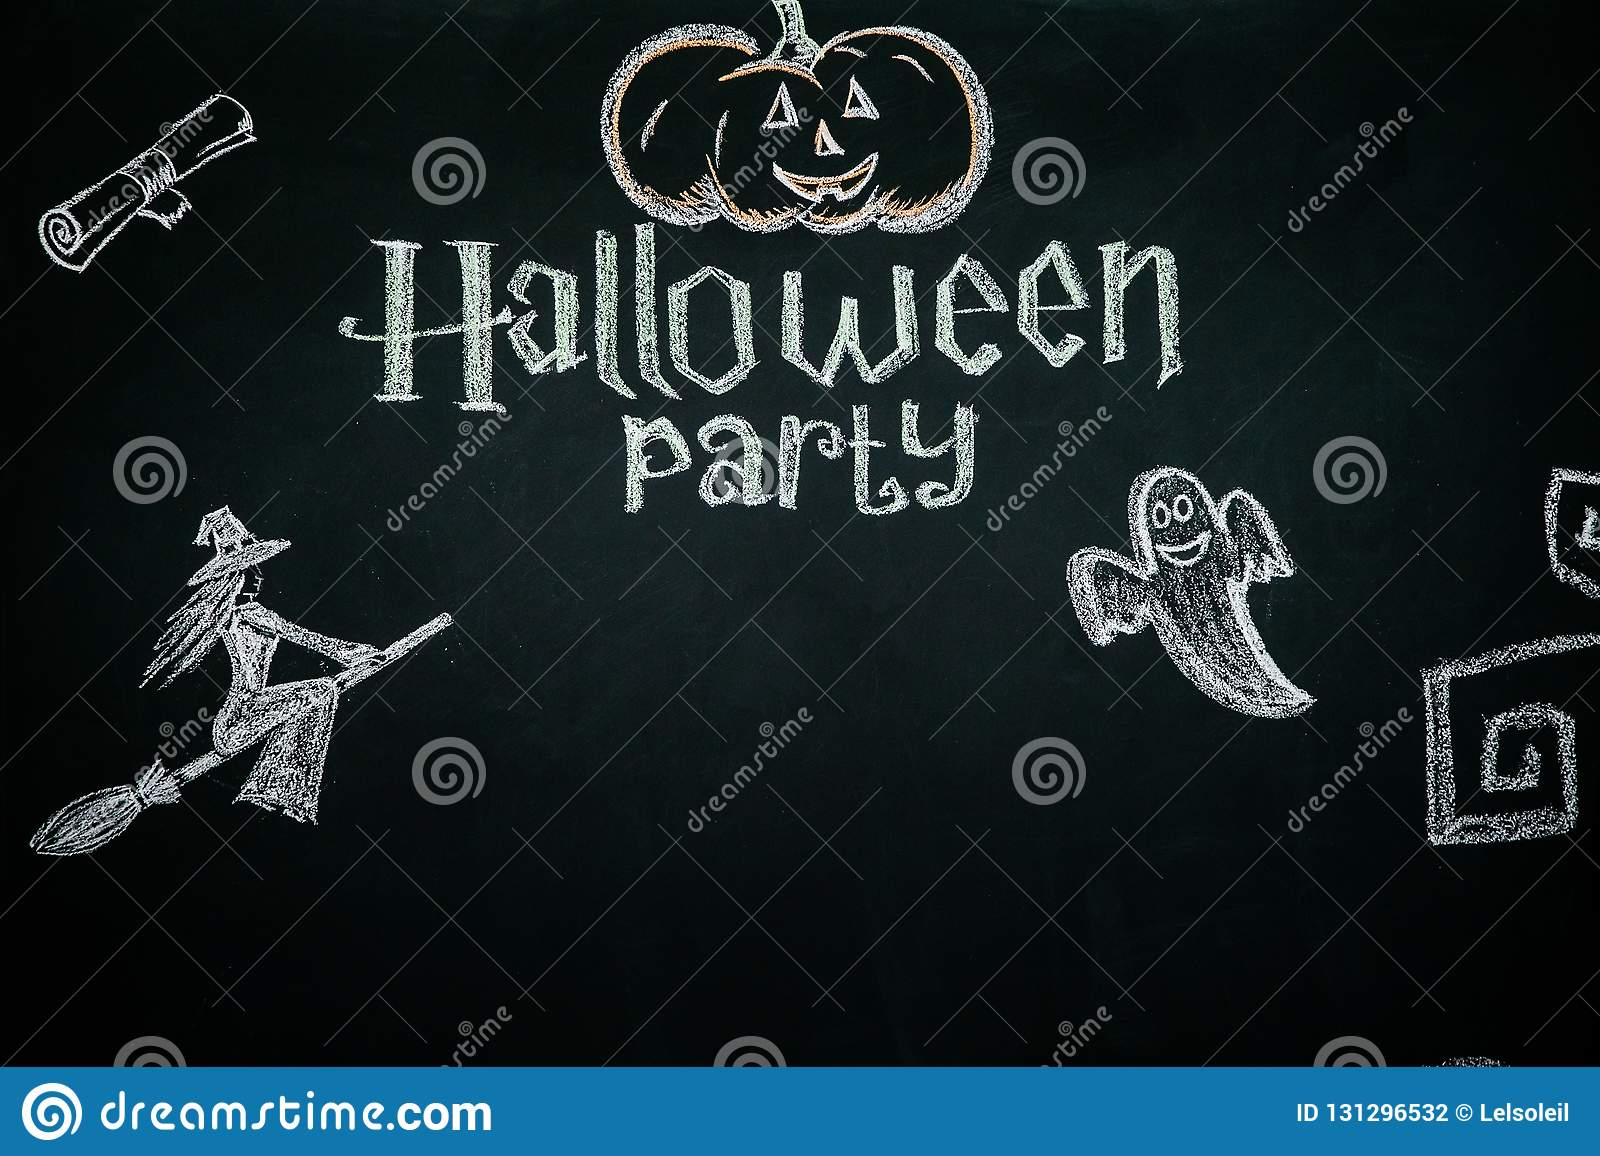 Black background with text and pictures for the celebration of Halloween